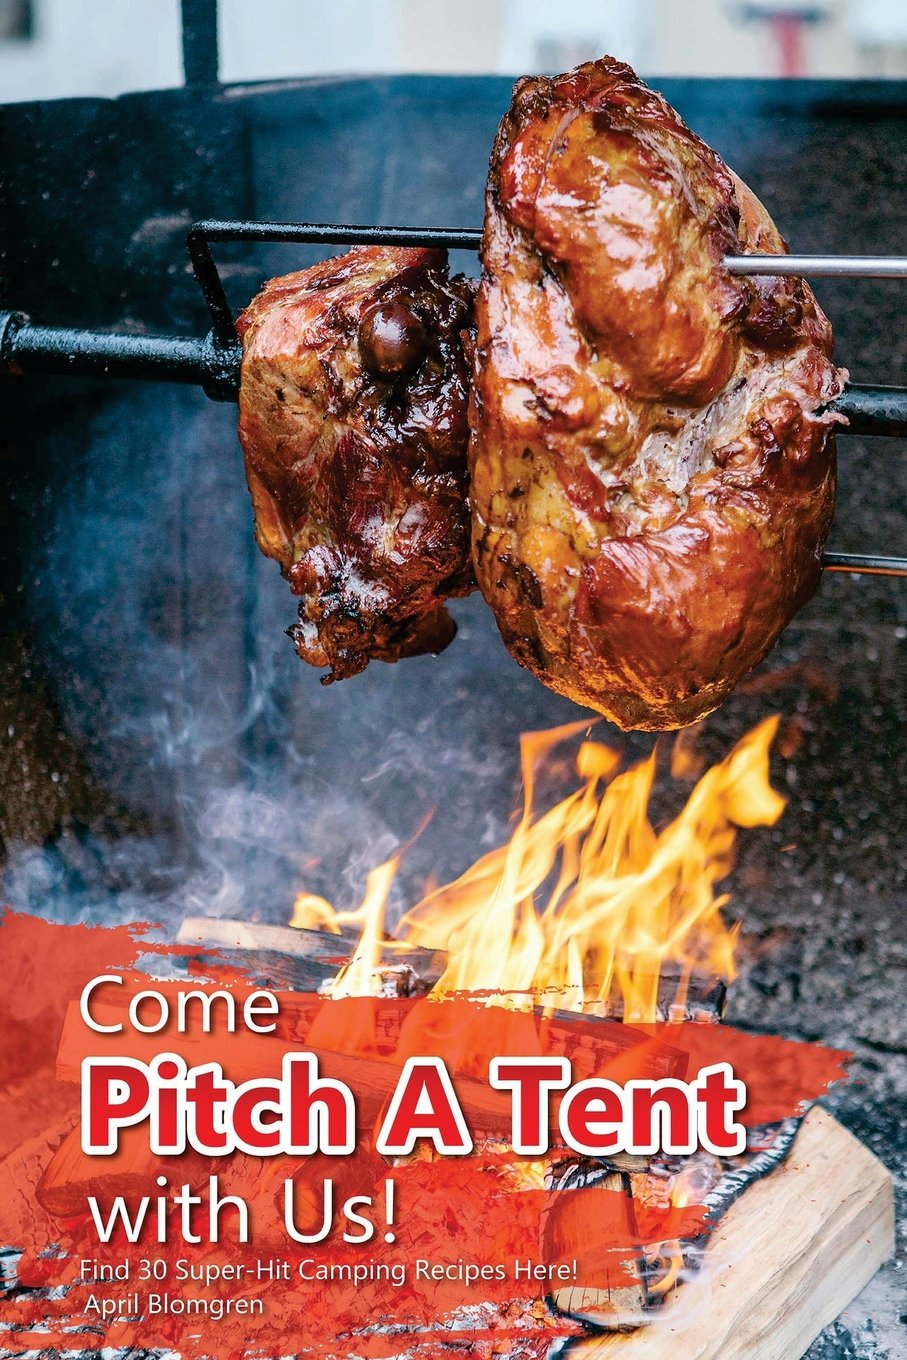 Come Pitch A Tent with Us!: Find 30 Super-Hit Camping Recipes Here! pdf epub